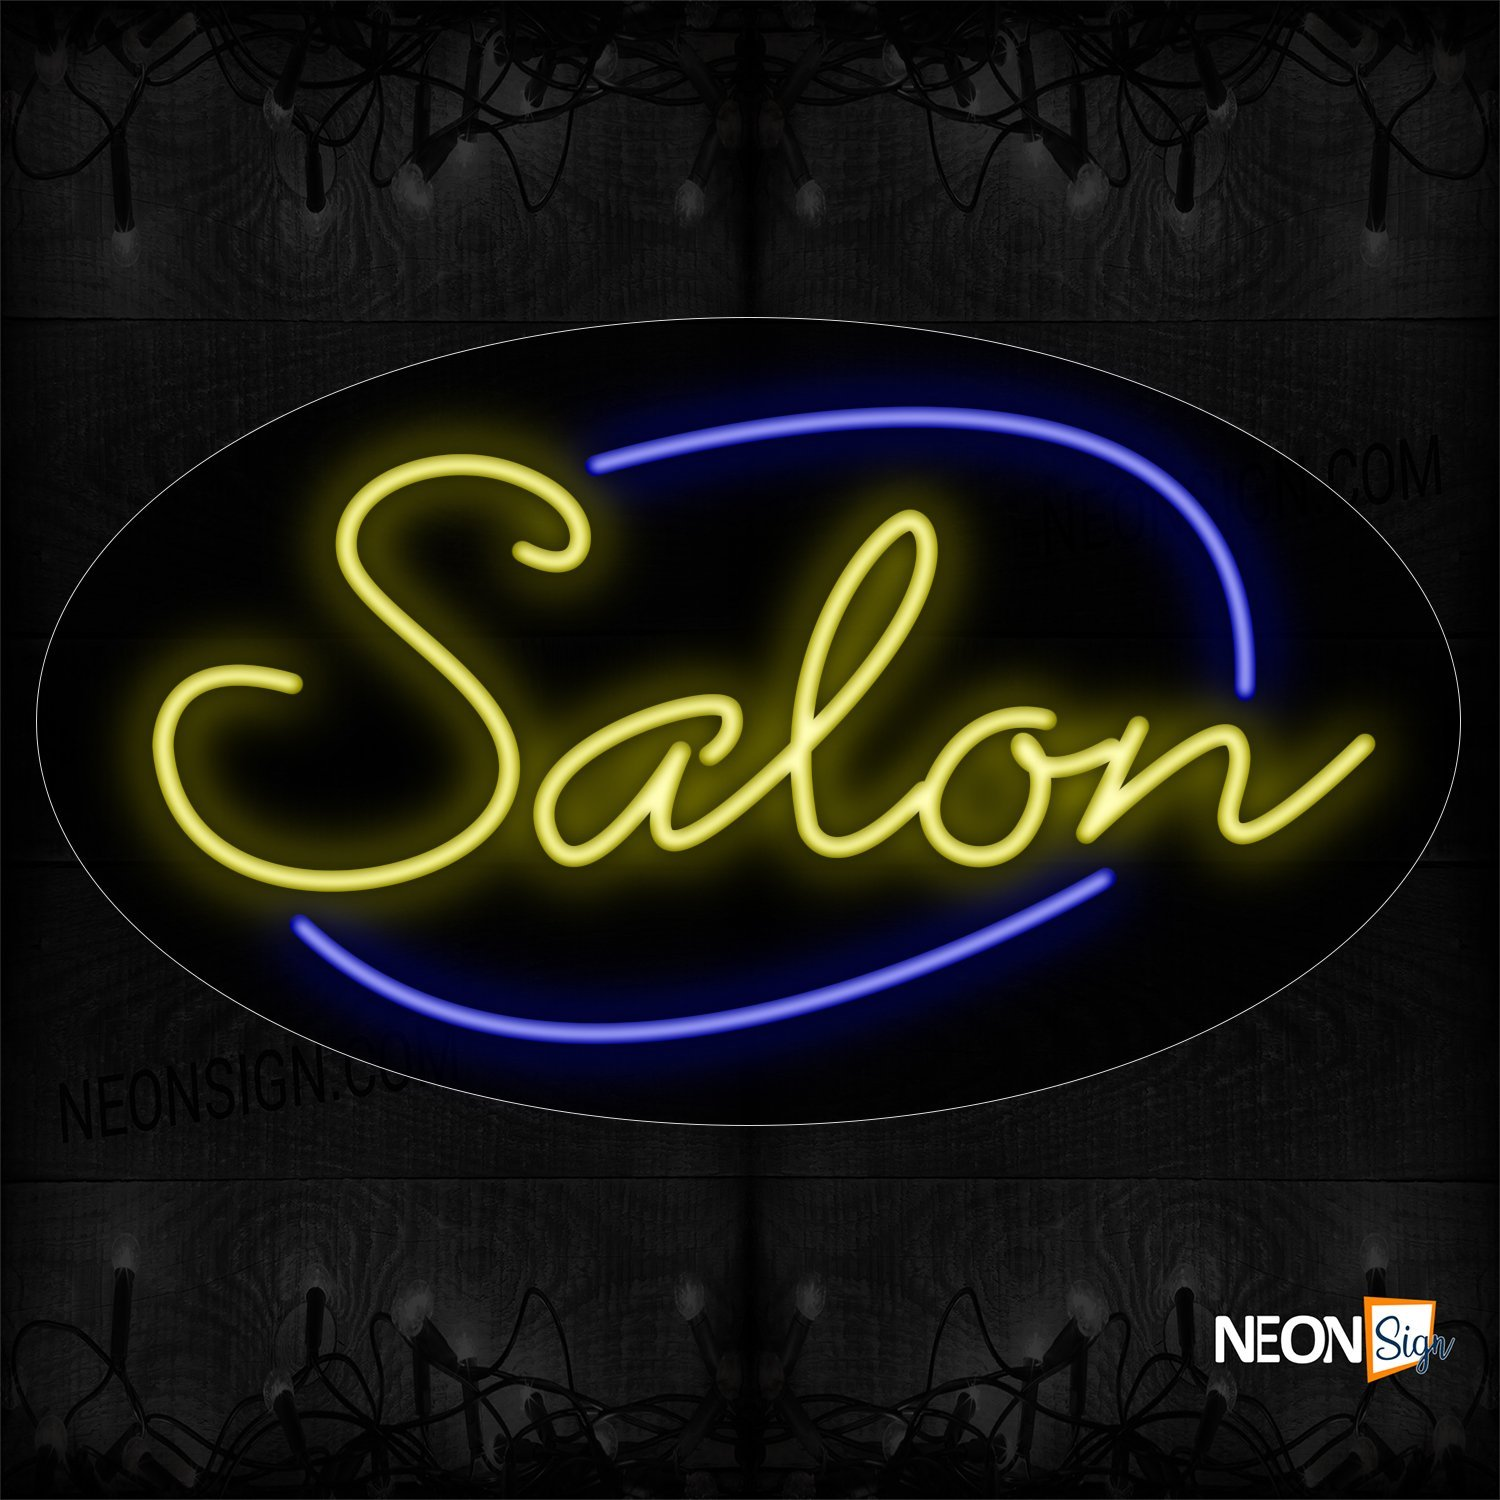 Image of Salon In Yellow With Blue Arc Border Neon Sign